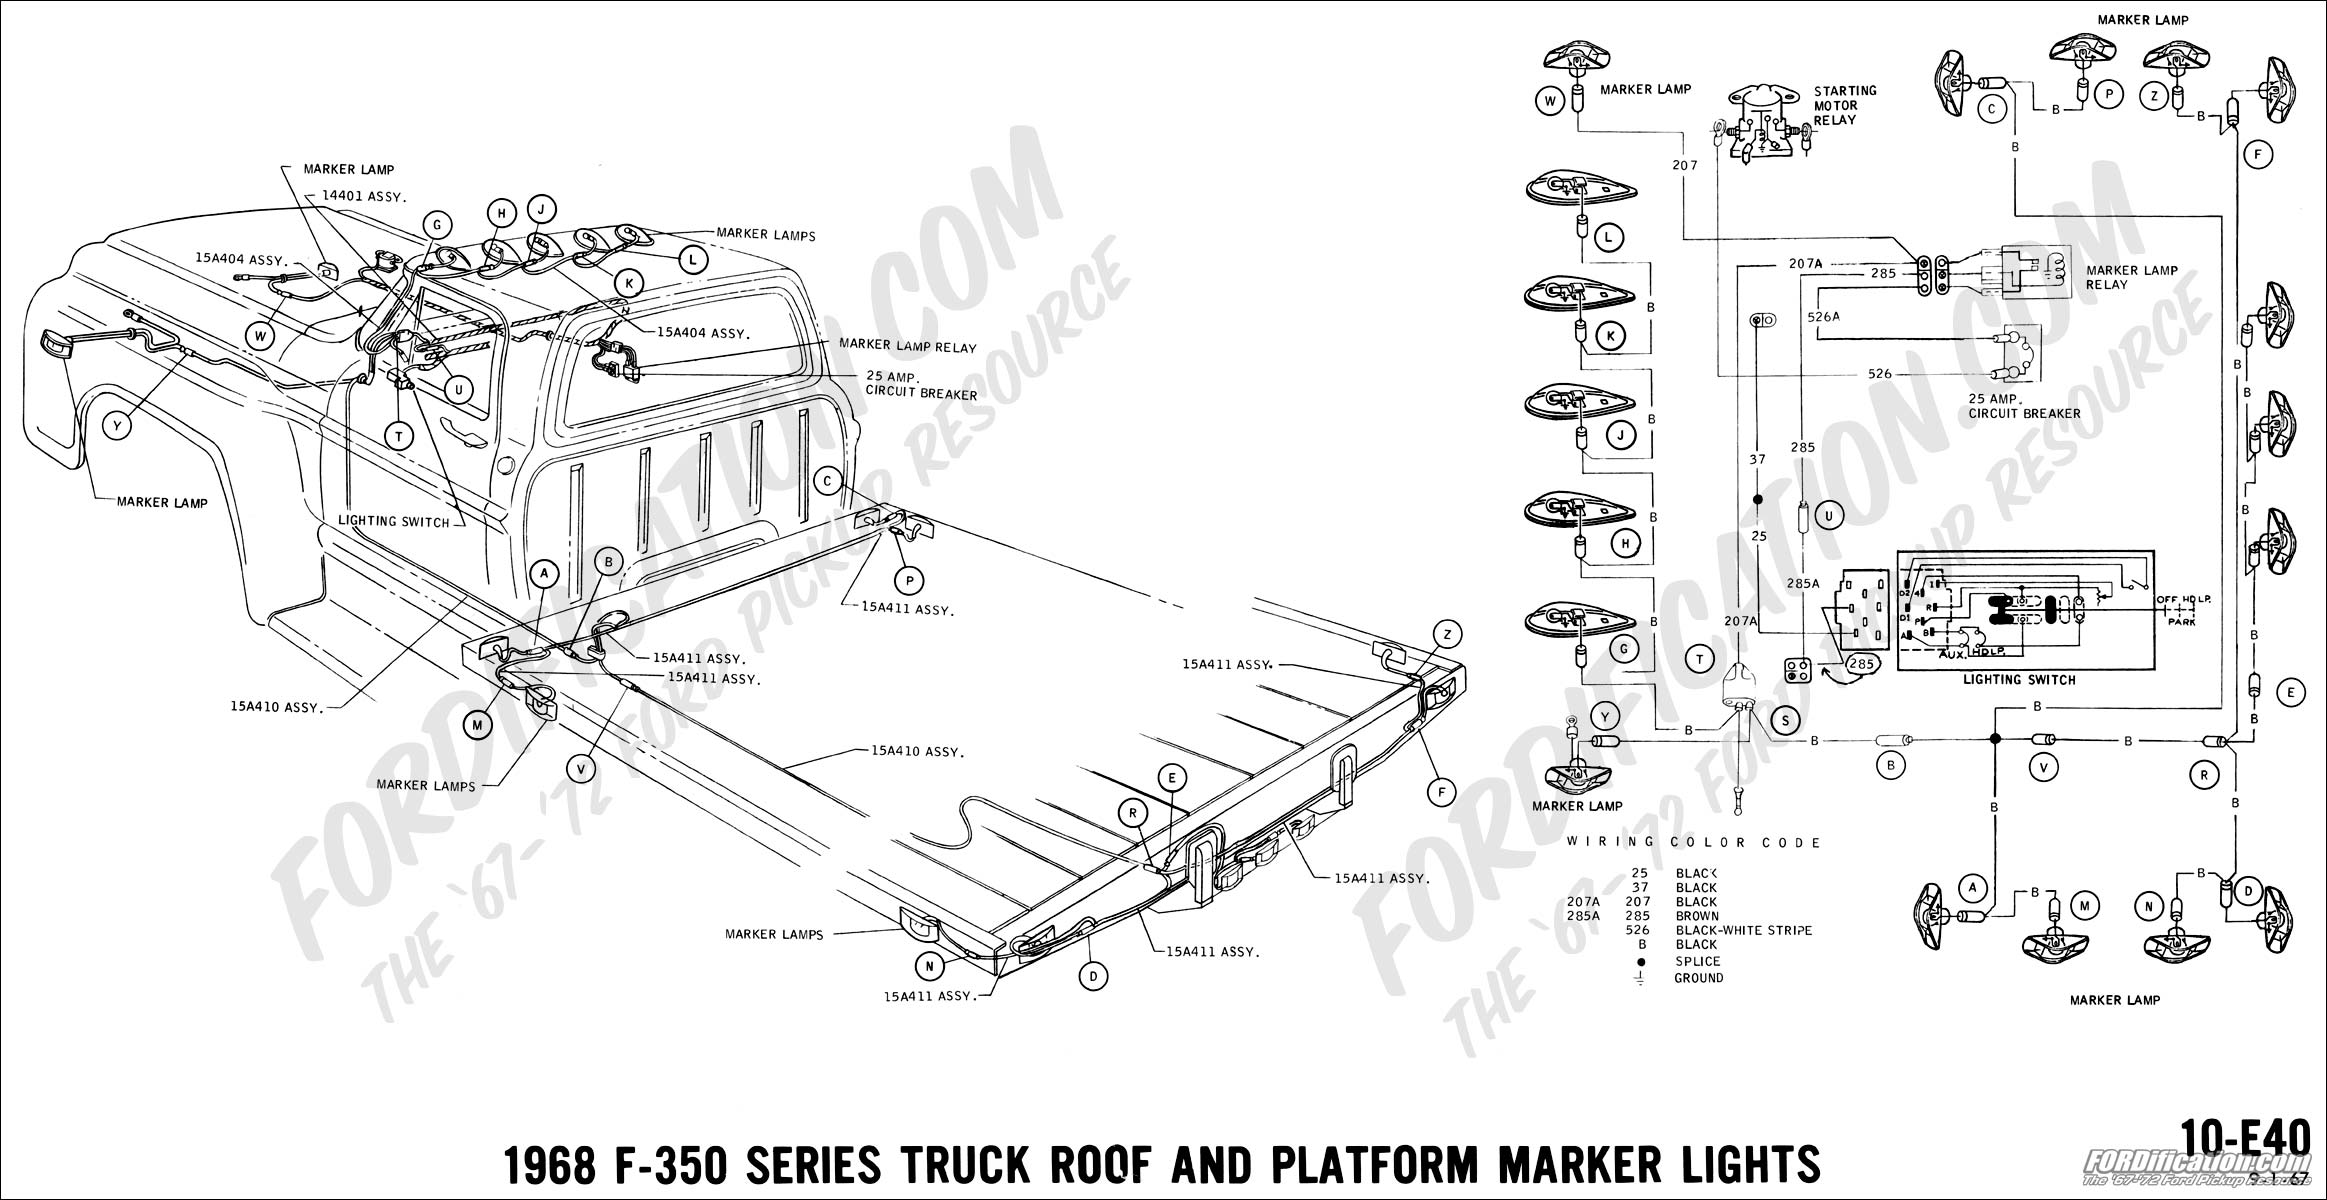 2002 peterbilt 379 turn signal wiring diagram with Peterbilt 379 Wiring Schematic Alternator Wiring Diagrams on Brake Light Switch 1999 Ford F250 Super Duty also Peterbilt 379 Wiring Schematic Alternator Wiring Diagrams furthermore Showthread together with 89 Chevy Blazer Wiring Diagram as well 97 E150 Wiring Diagram.